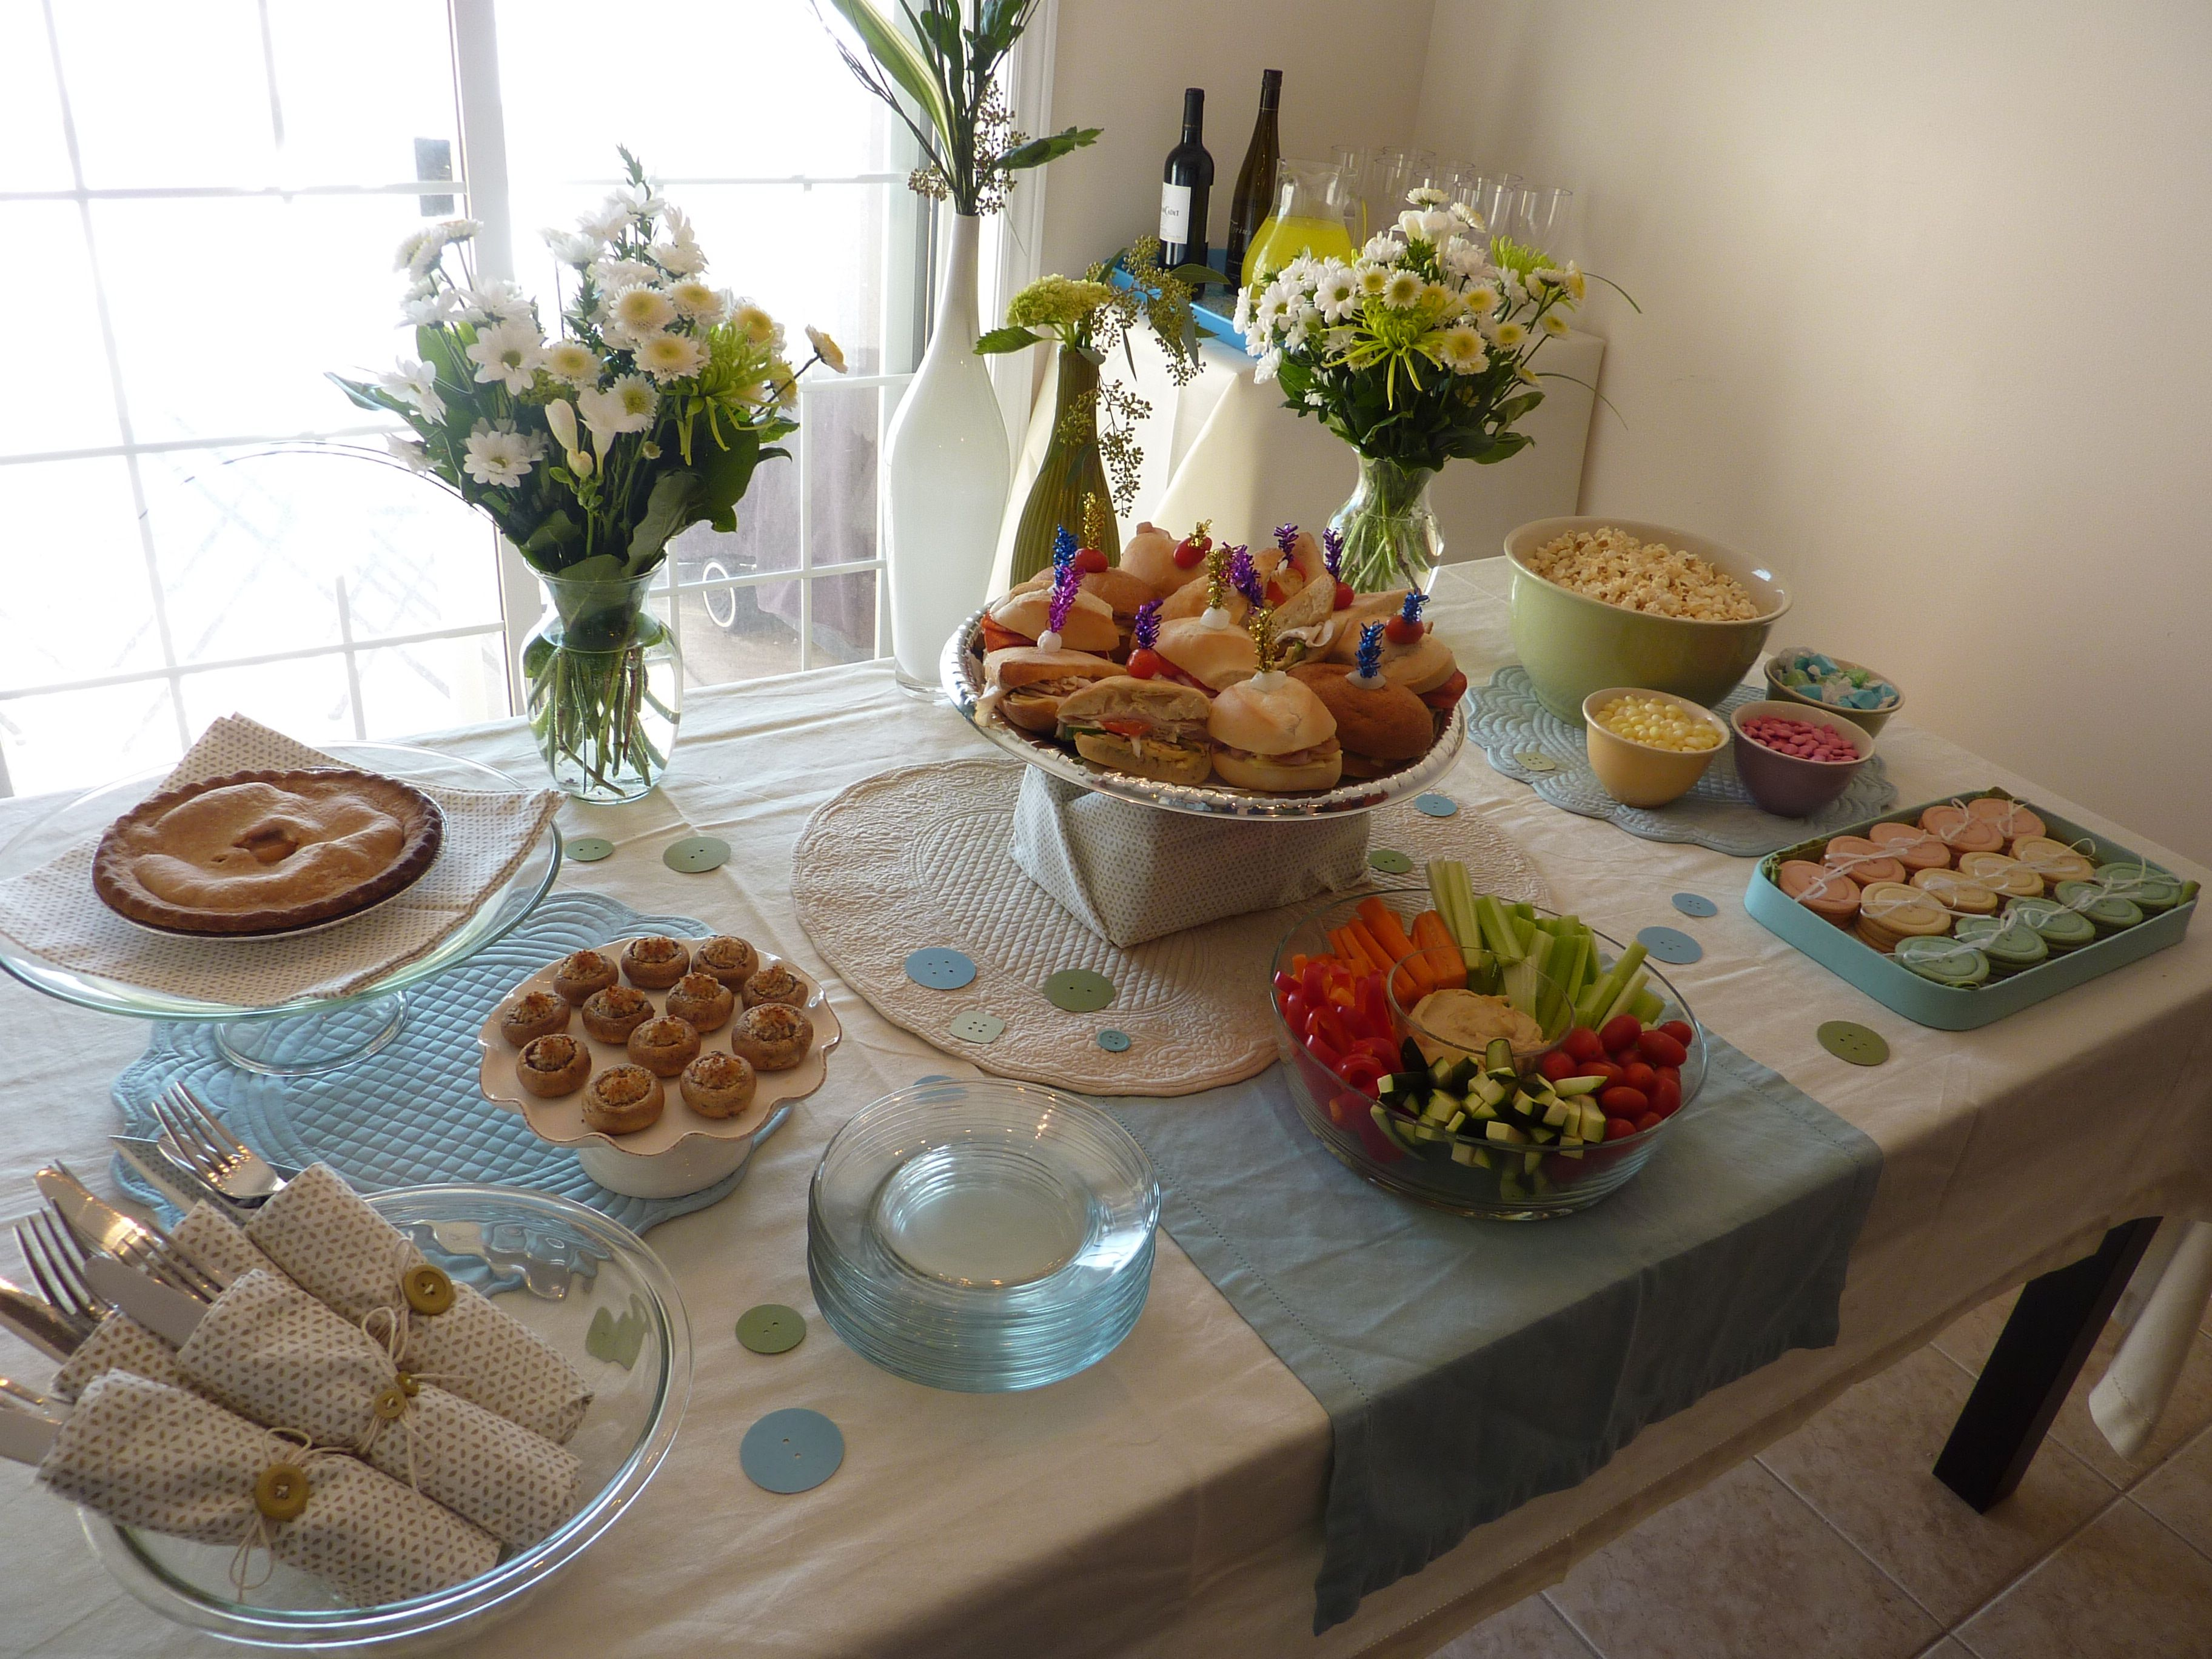 How To Host A Fake Baby Shower Baby Shower Buffet Menu And Food Ideas - Round table buffet menu